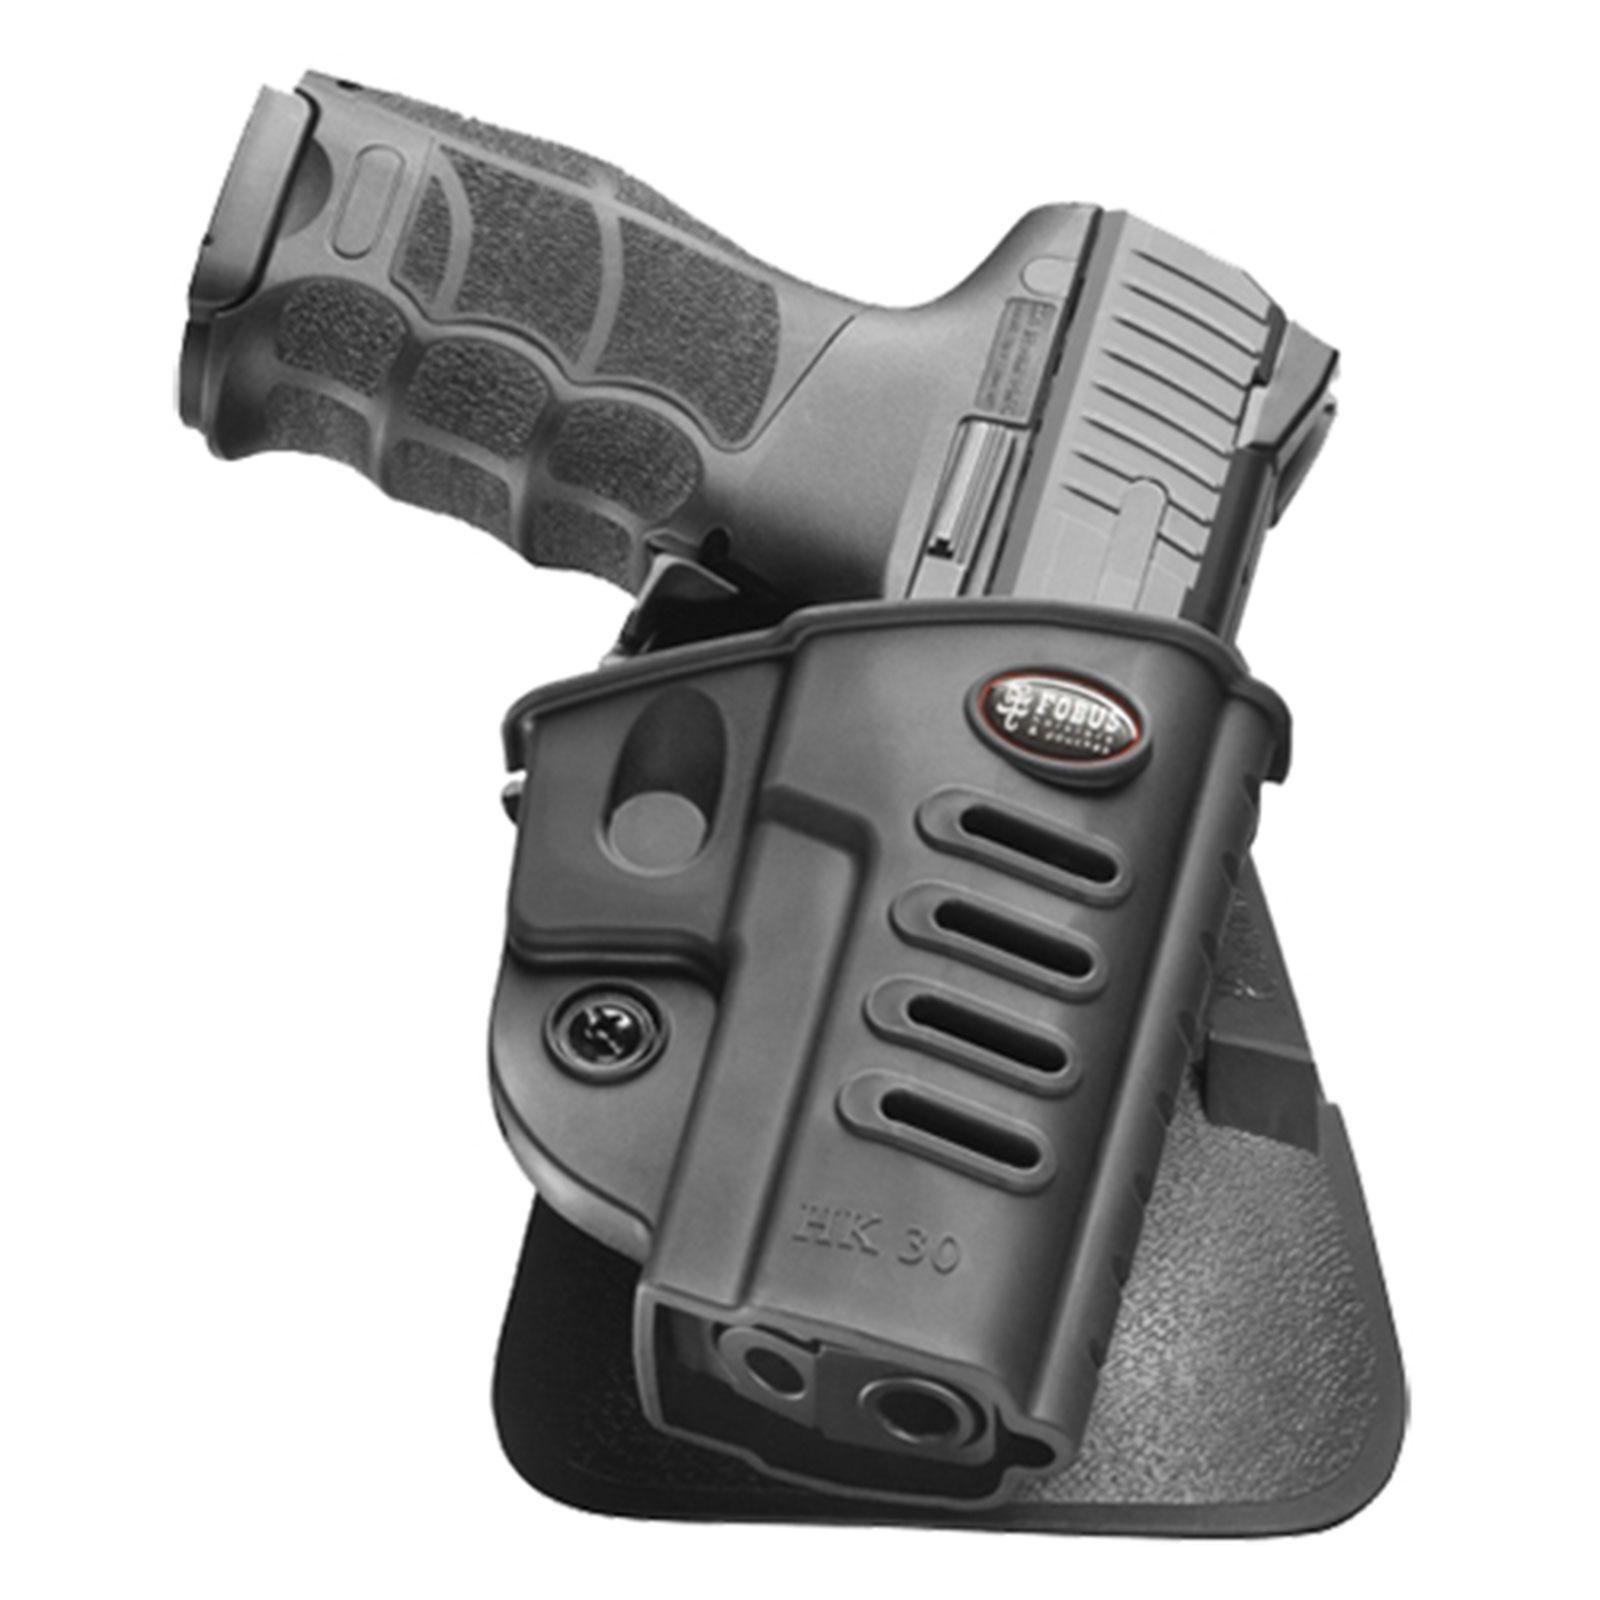 Fobus HK P30 Holster Roto Paddle by Fobus